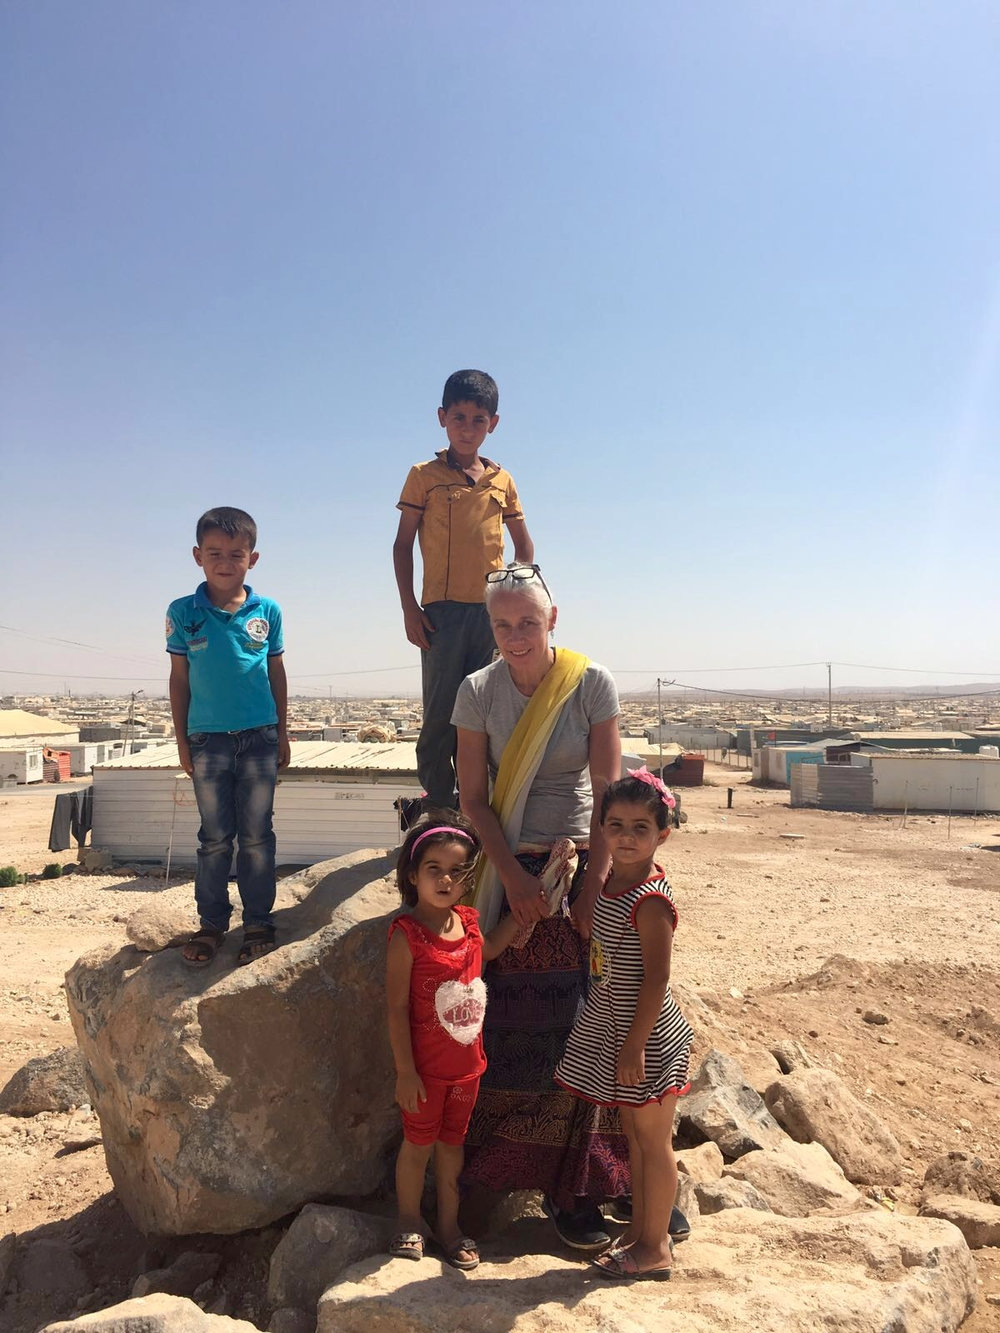 50% of people living in Za'atari are children